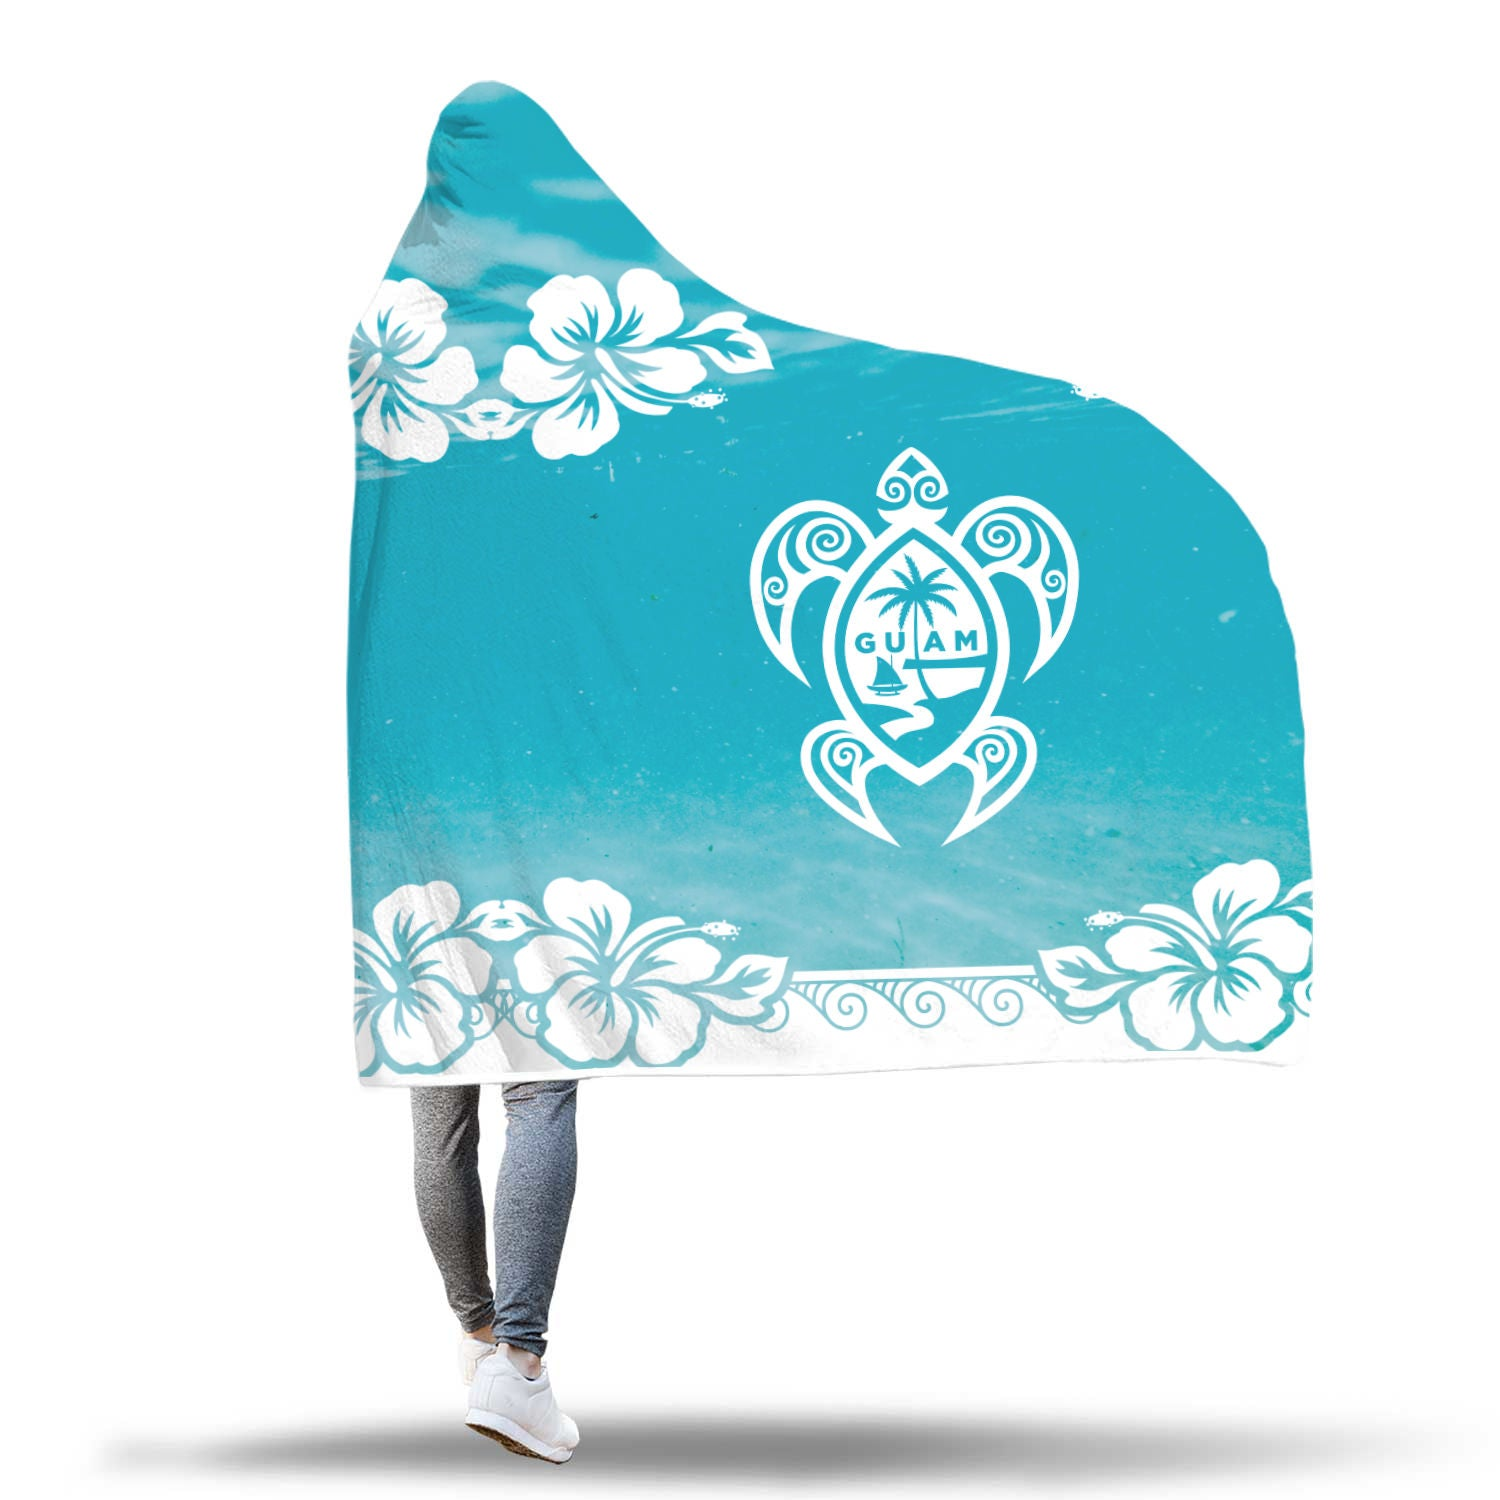 Guam Seal Turtle Hibiscus Underwater Hooded Blanket